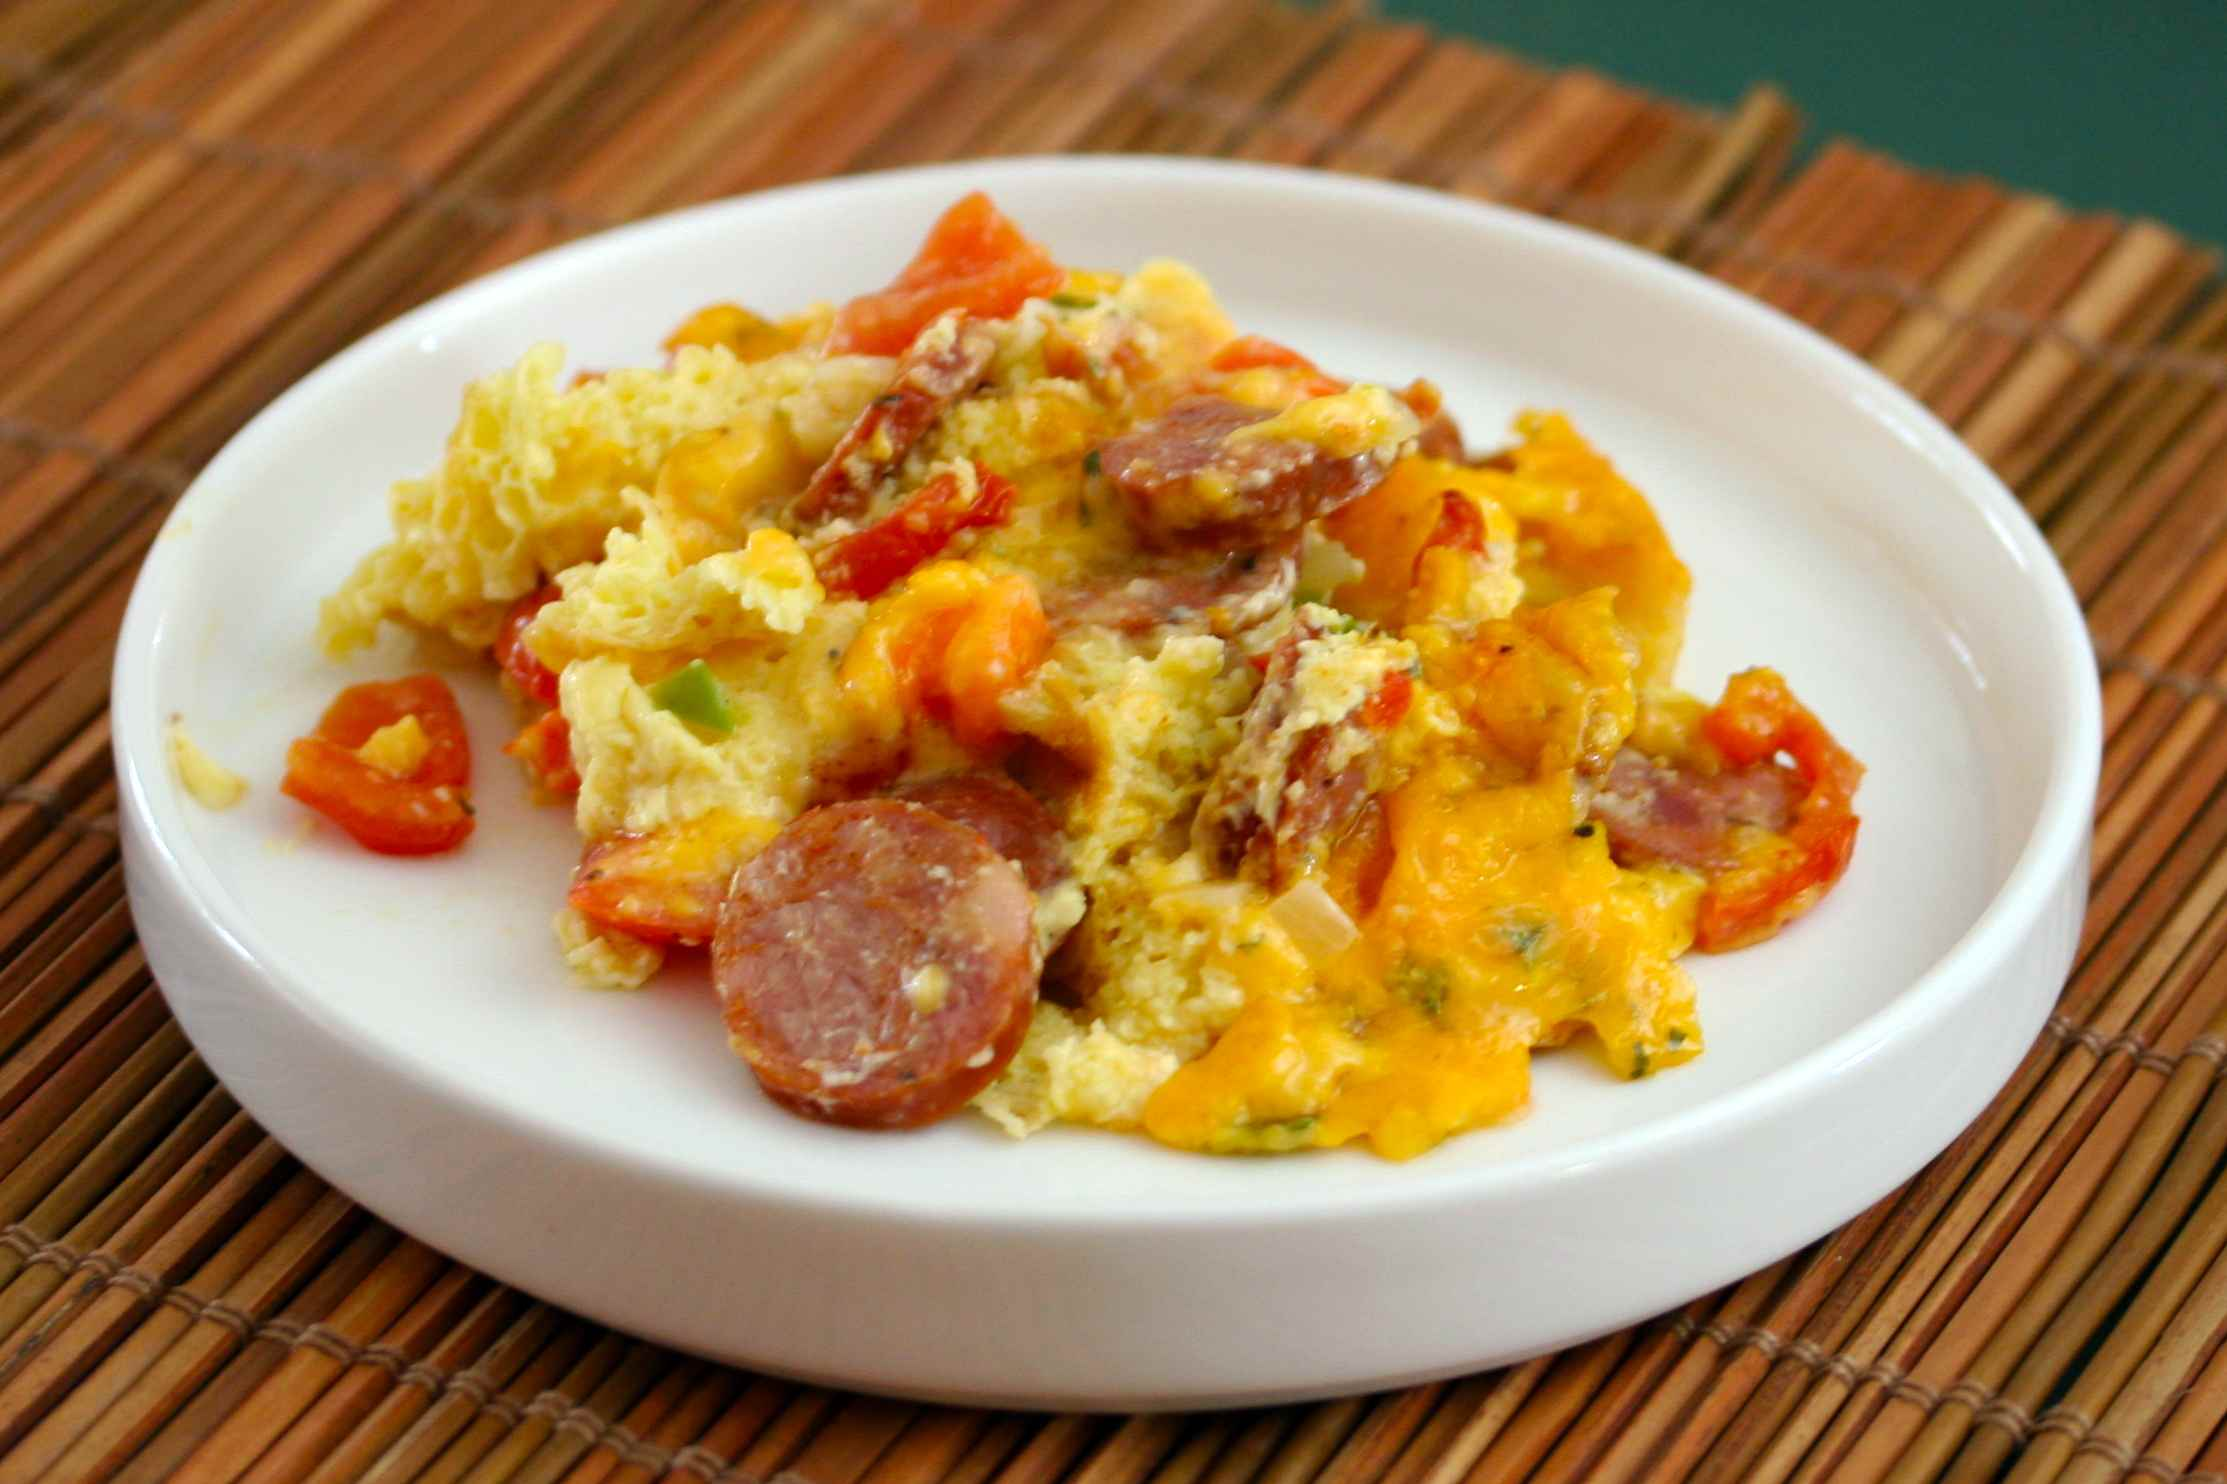 Egg casserole with andouille sausage